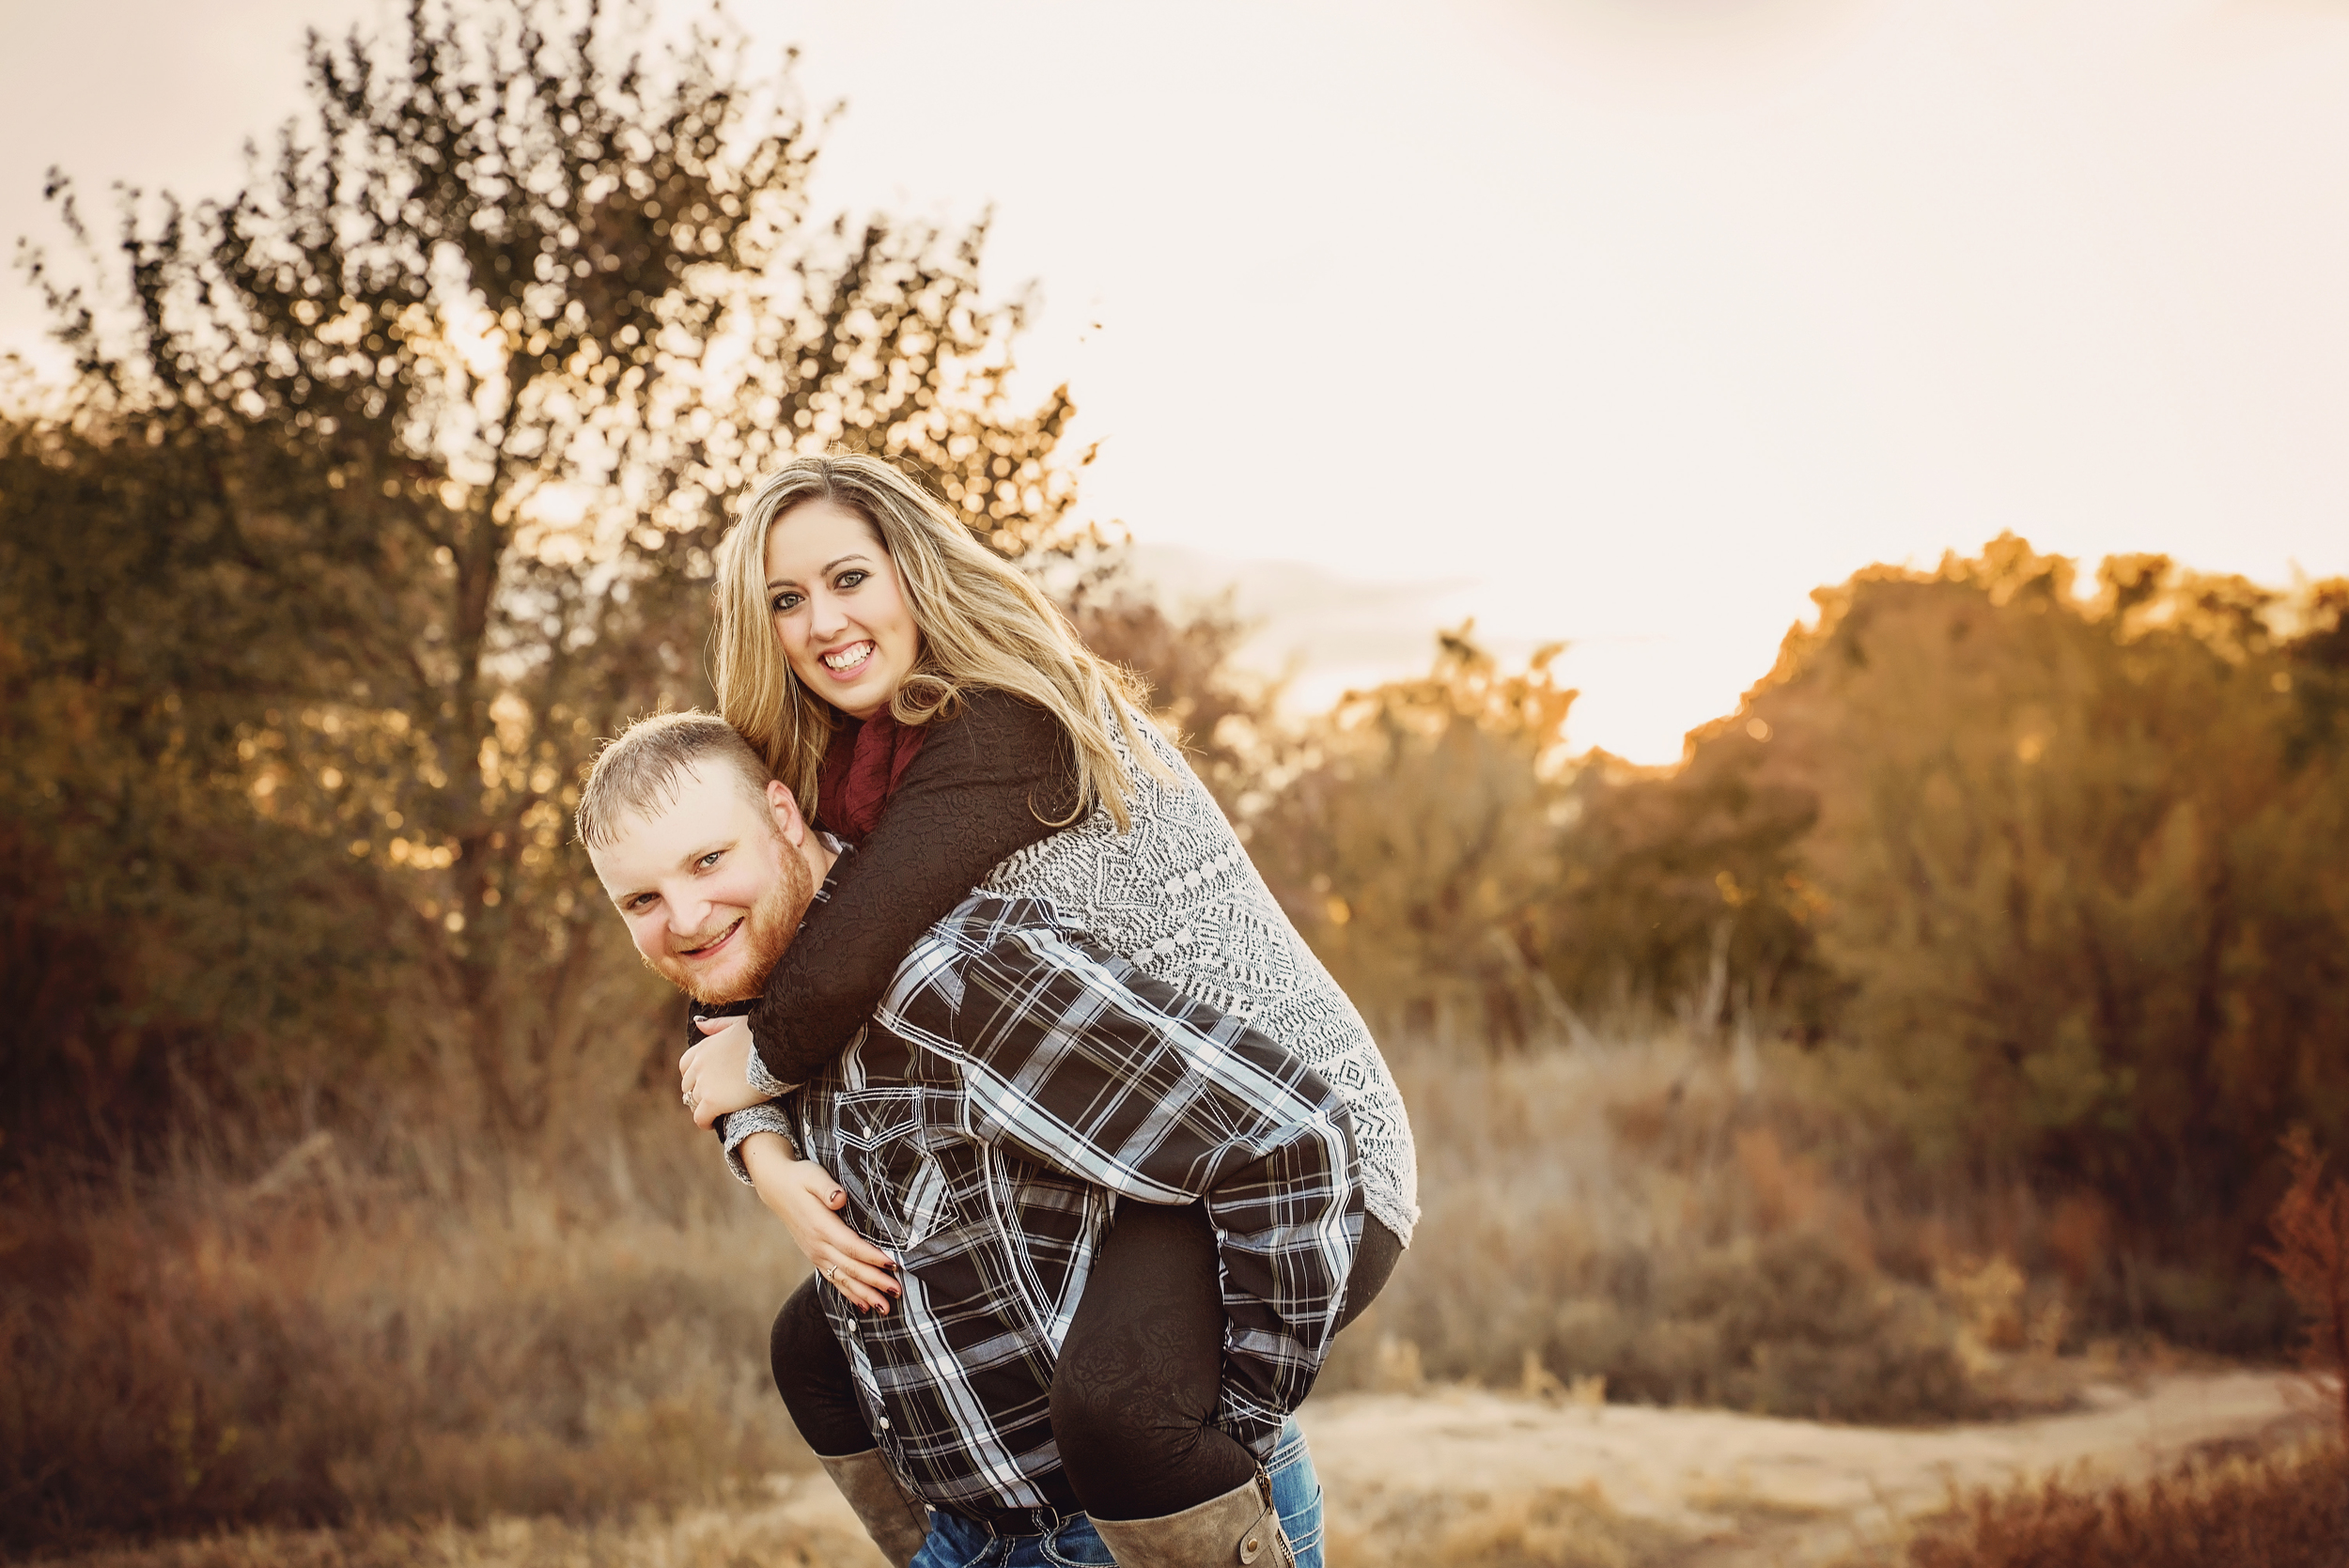 engagement-photography-gardencity-ks-15.jpg